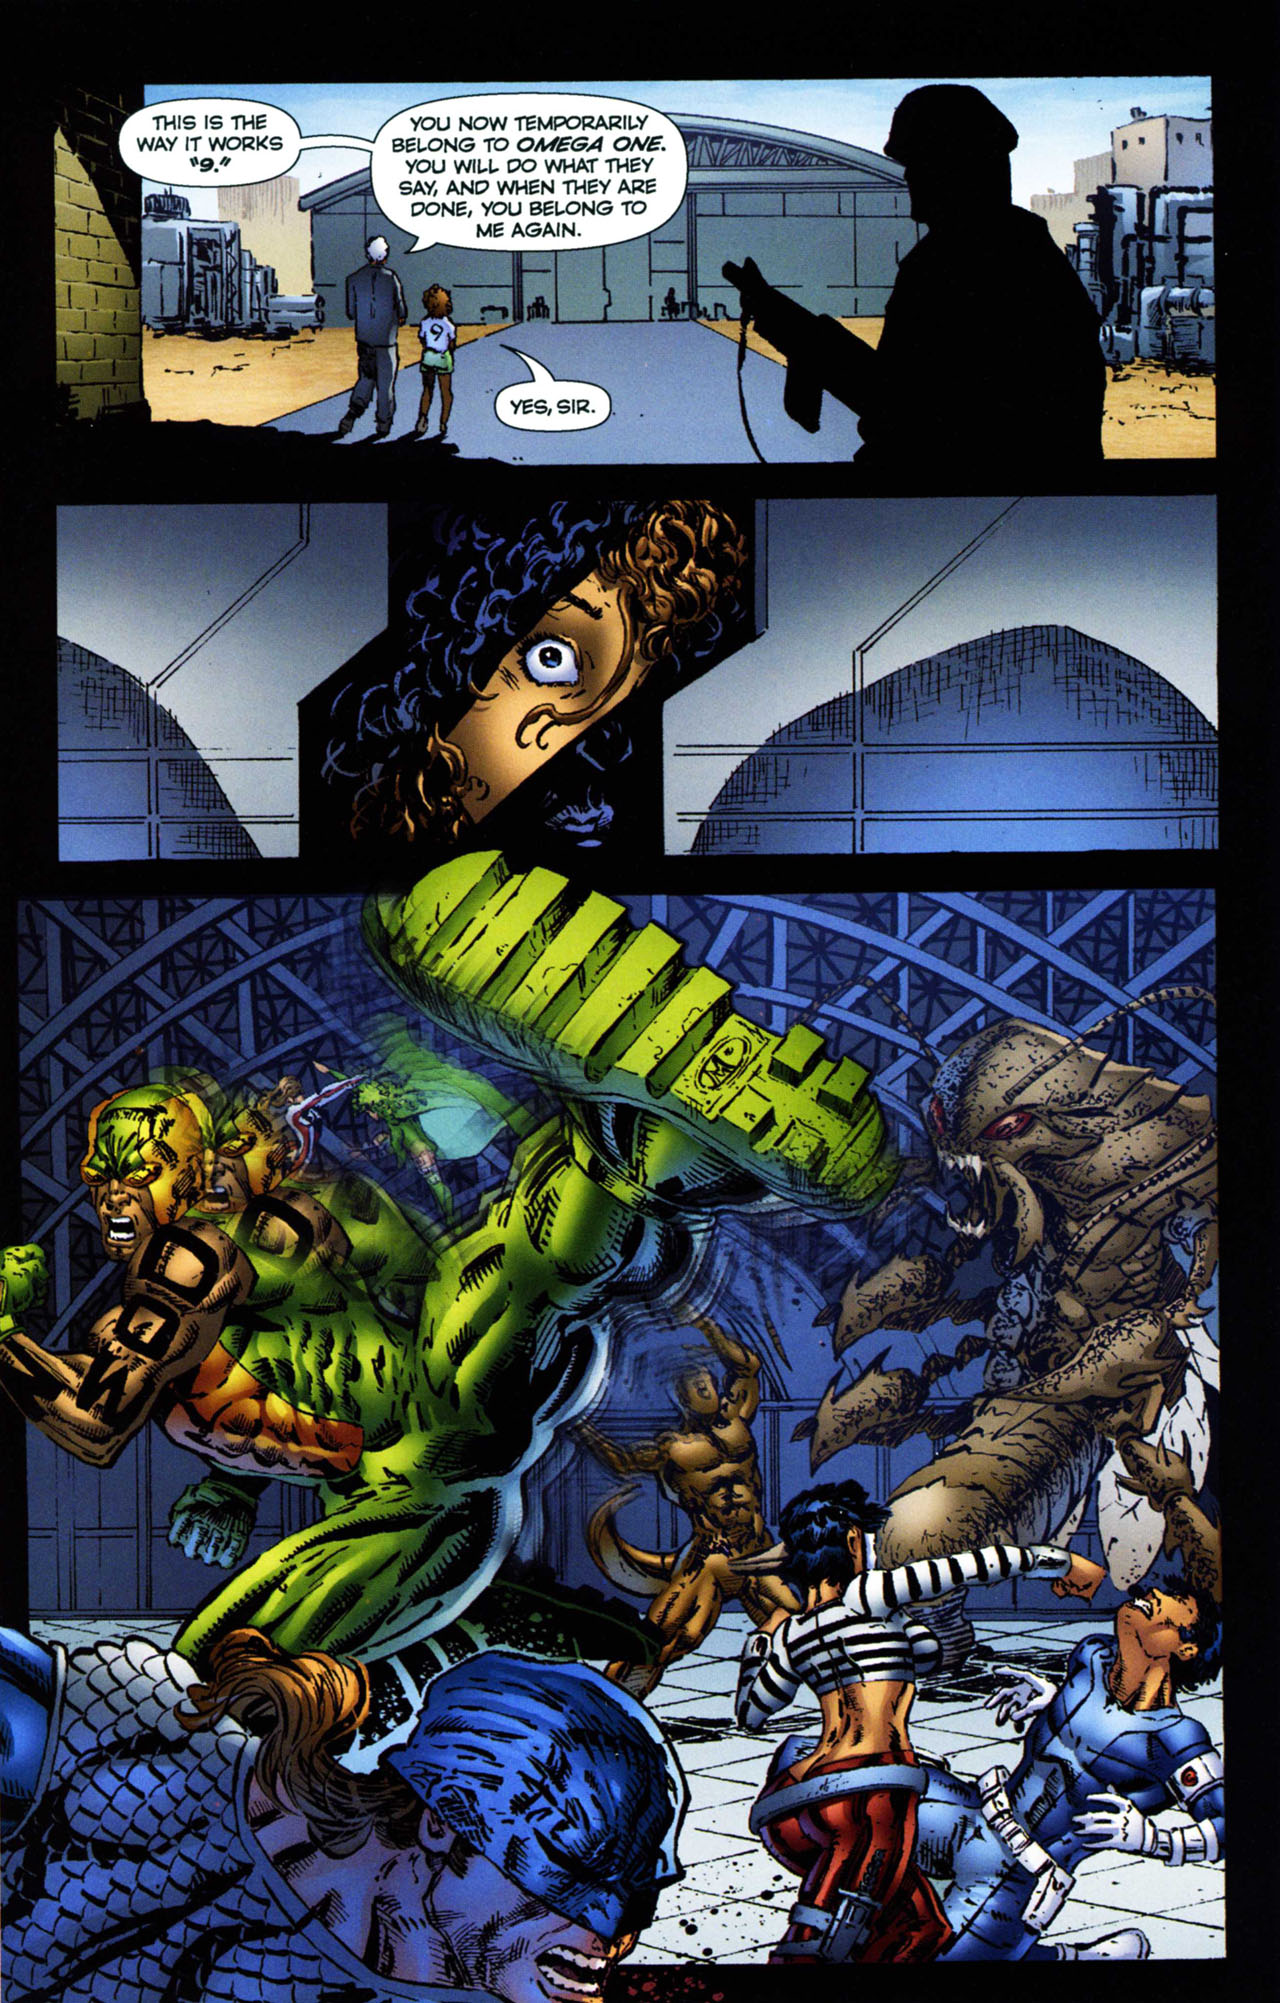 Read online Ant comic -  Issue #11 - 12